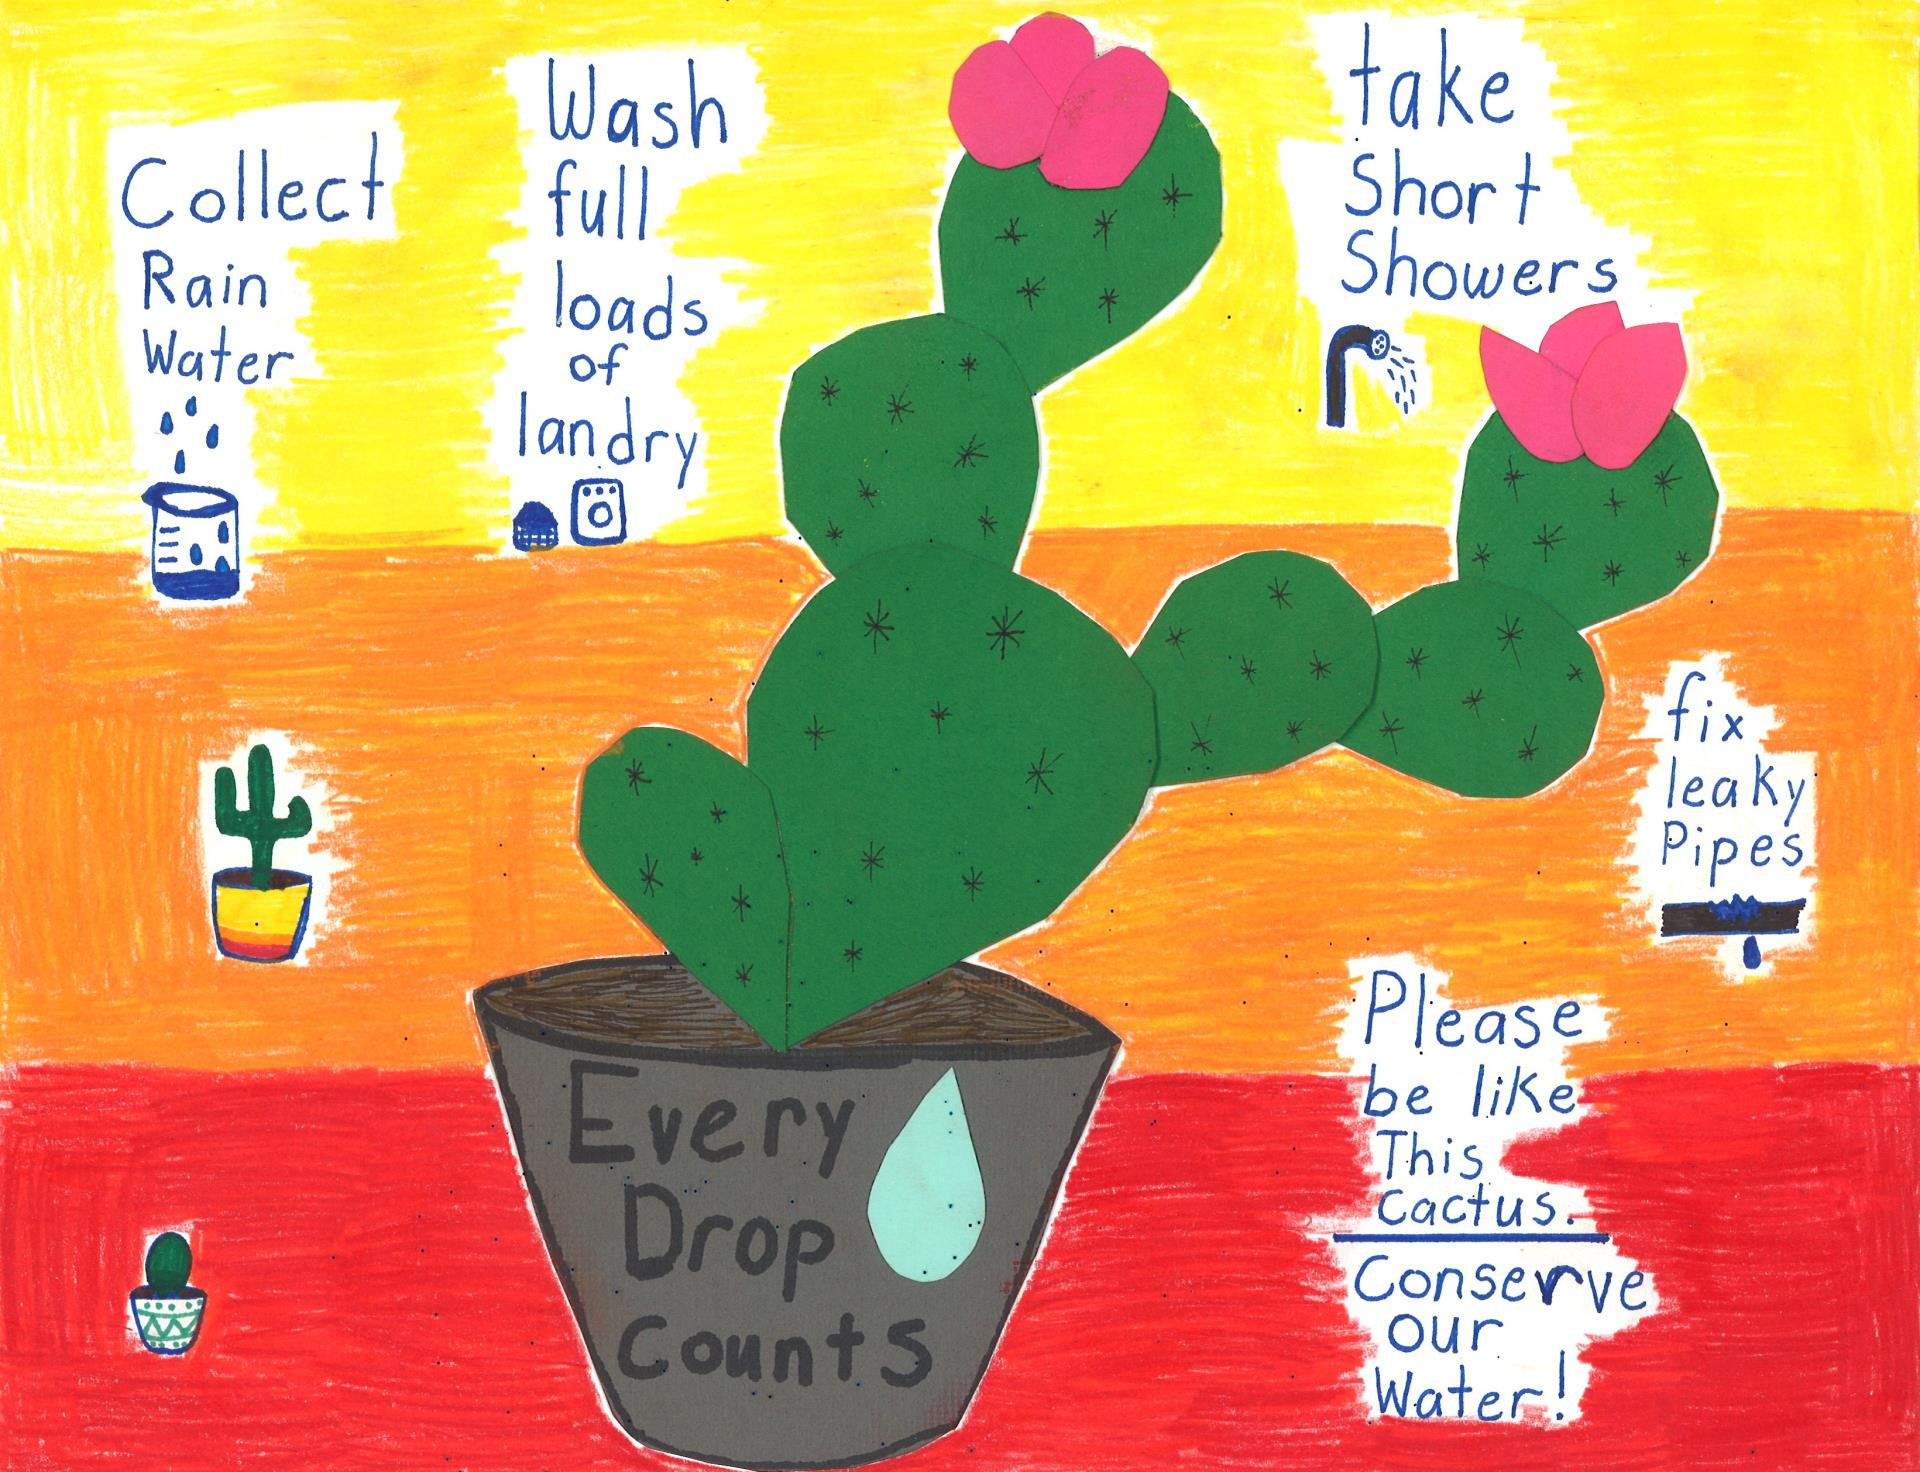 2019 Every Drop Counts Contest   City of Amarillo, TX